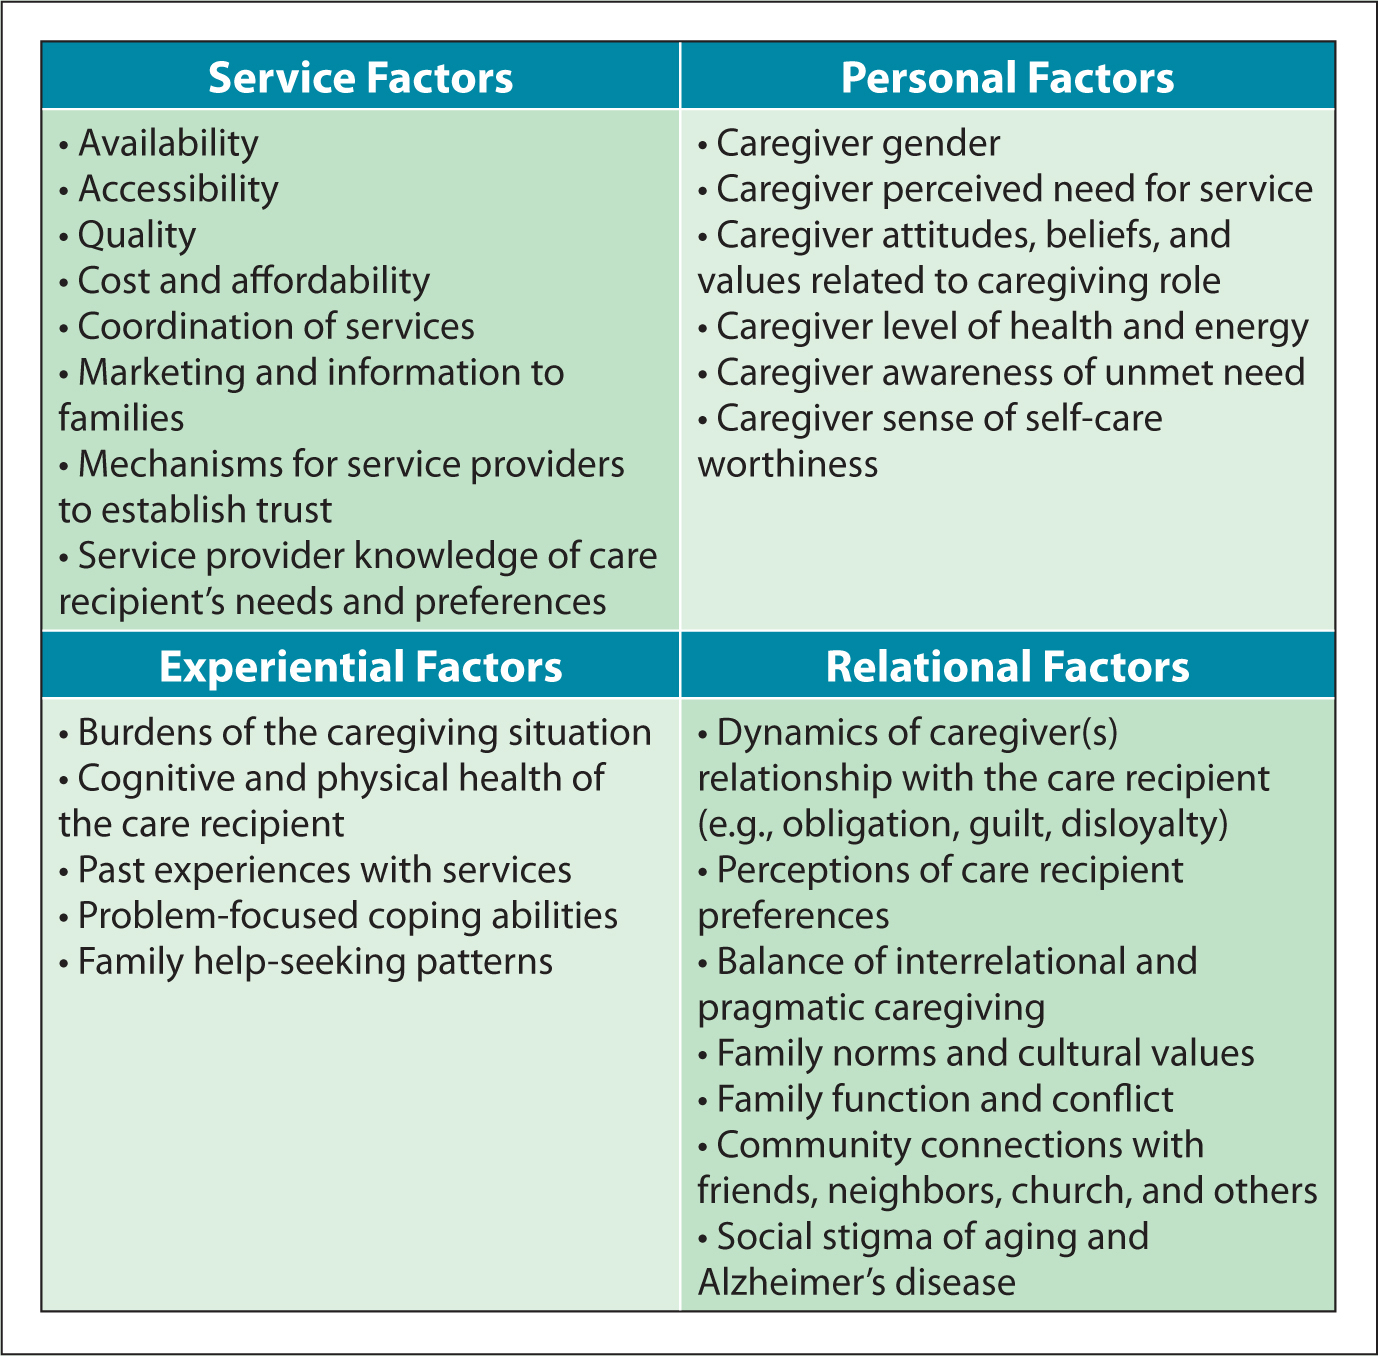 Evidence-based factors that influence decisions to use or not use support services.